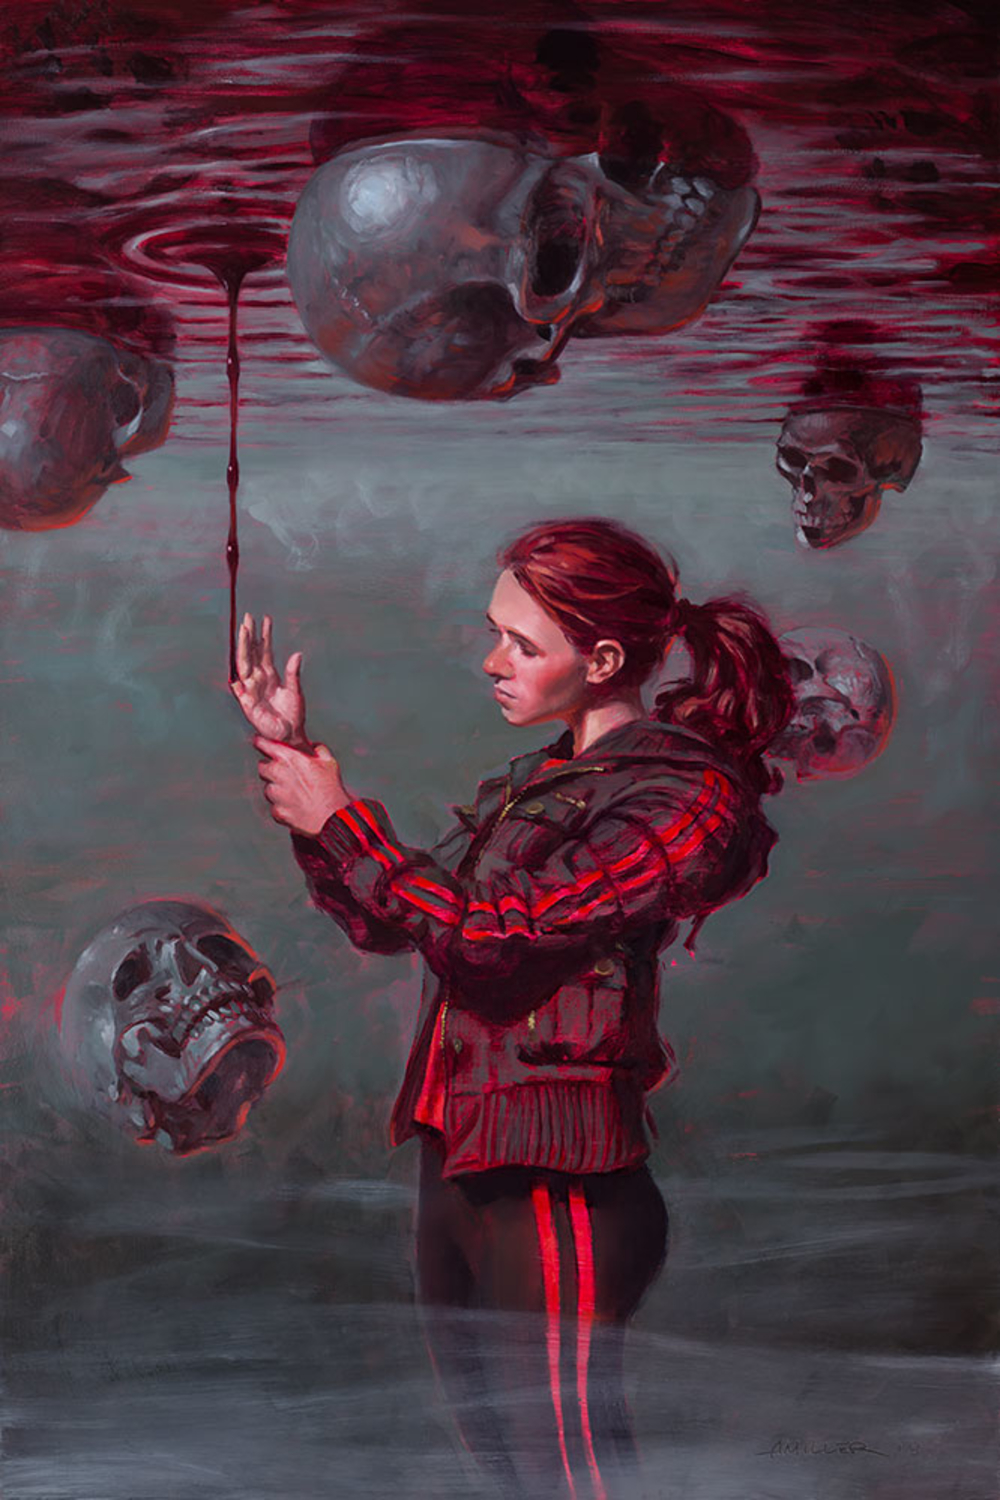 Touching Evil Artwork by Aaron Miller